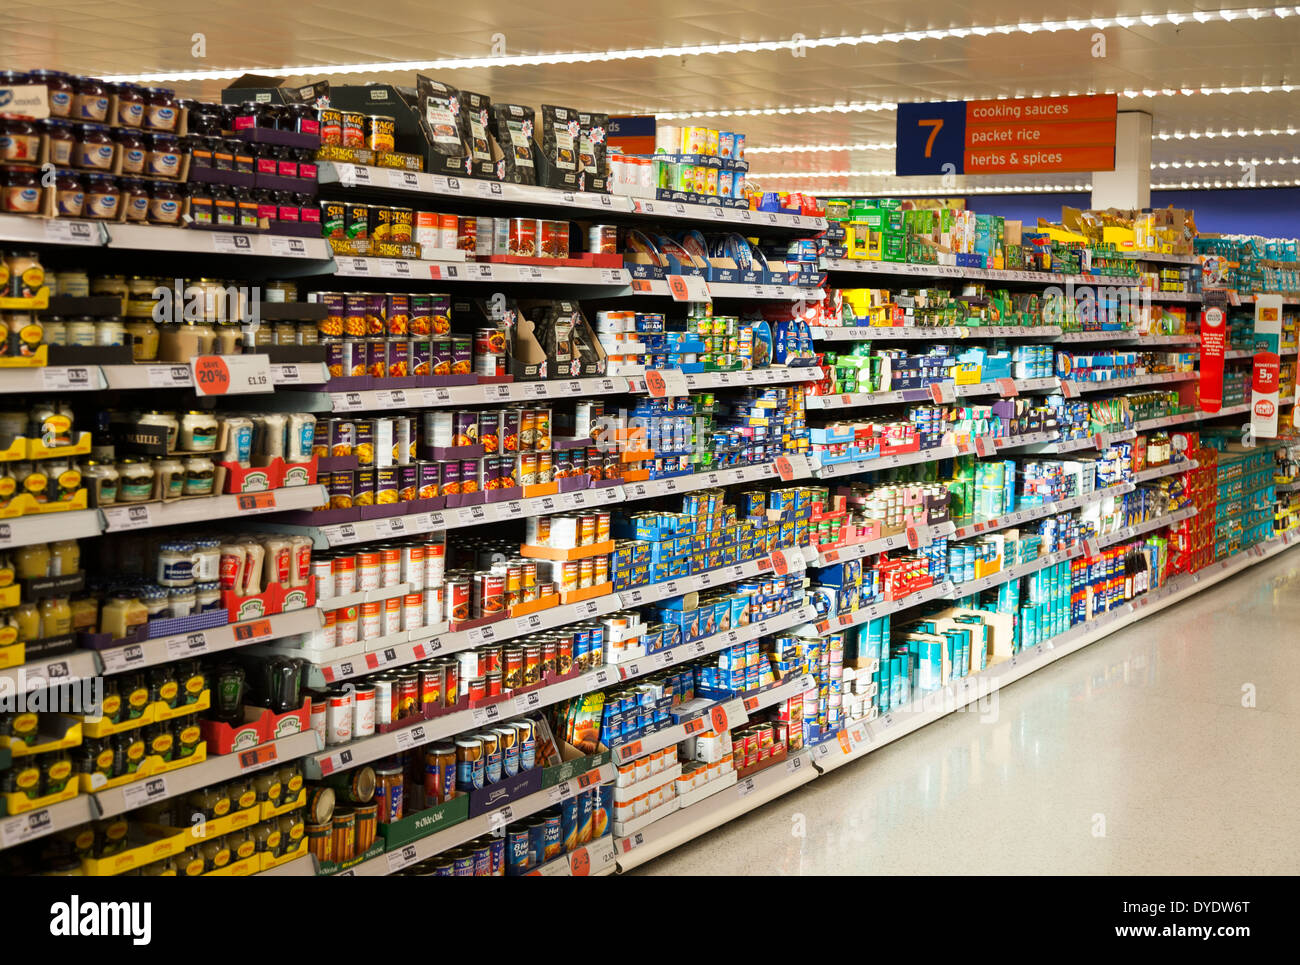 sainsbury's sainsburys aisle / aisles in a UK store / shop ...